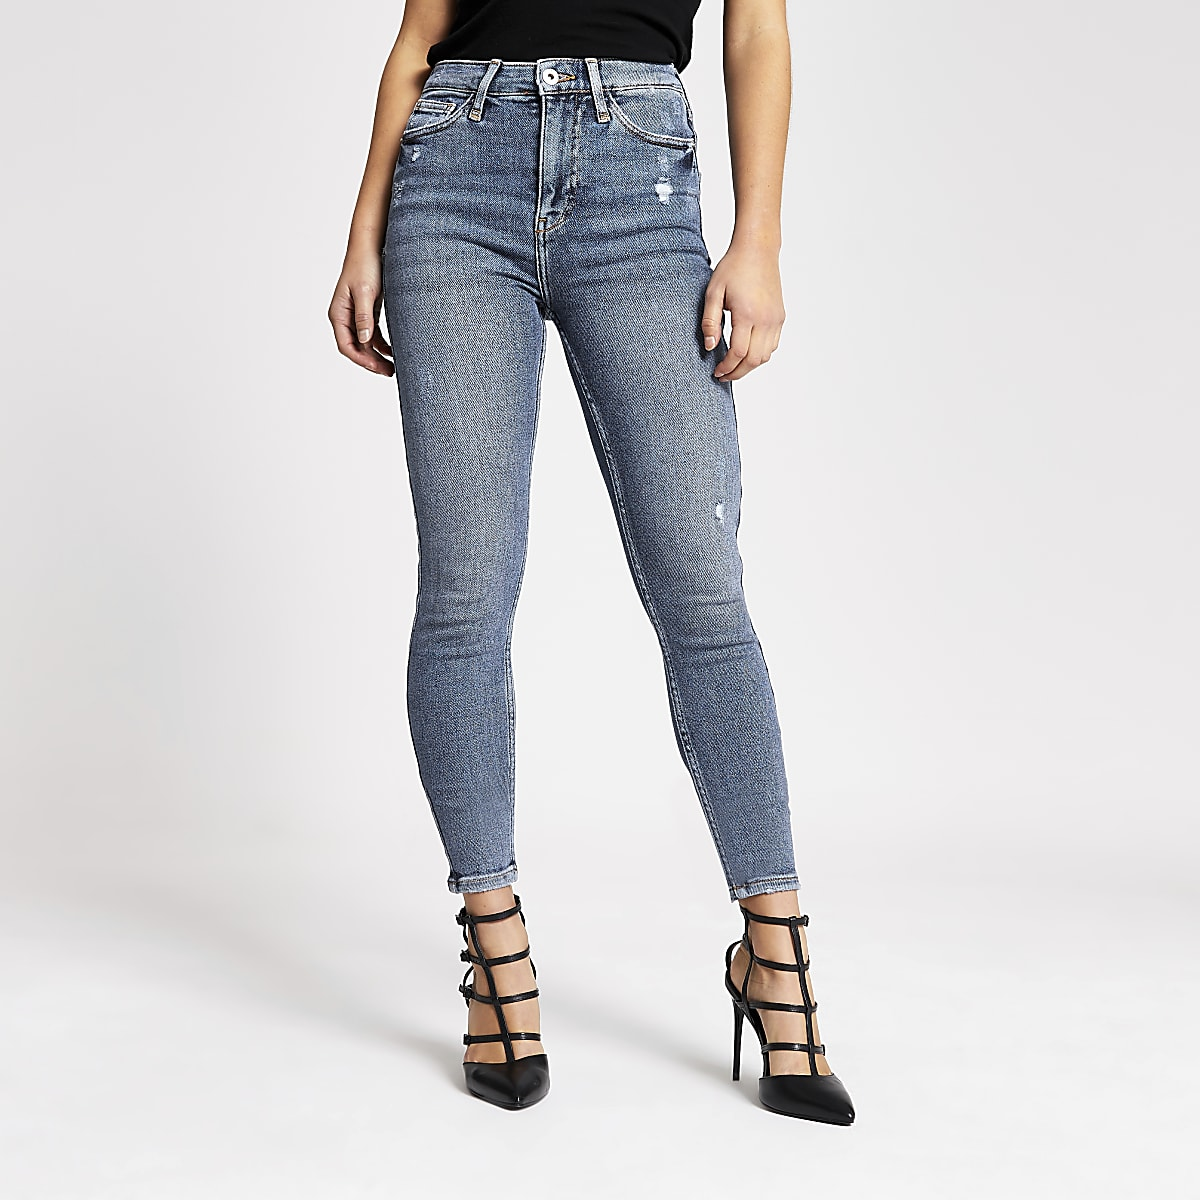 Petite blue Hailey high rise jeans